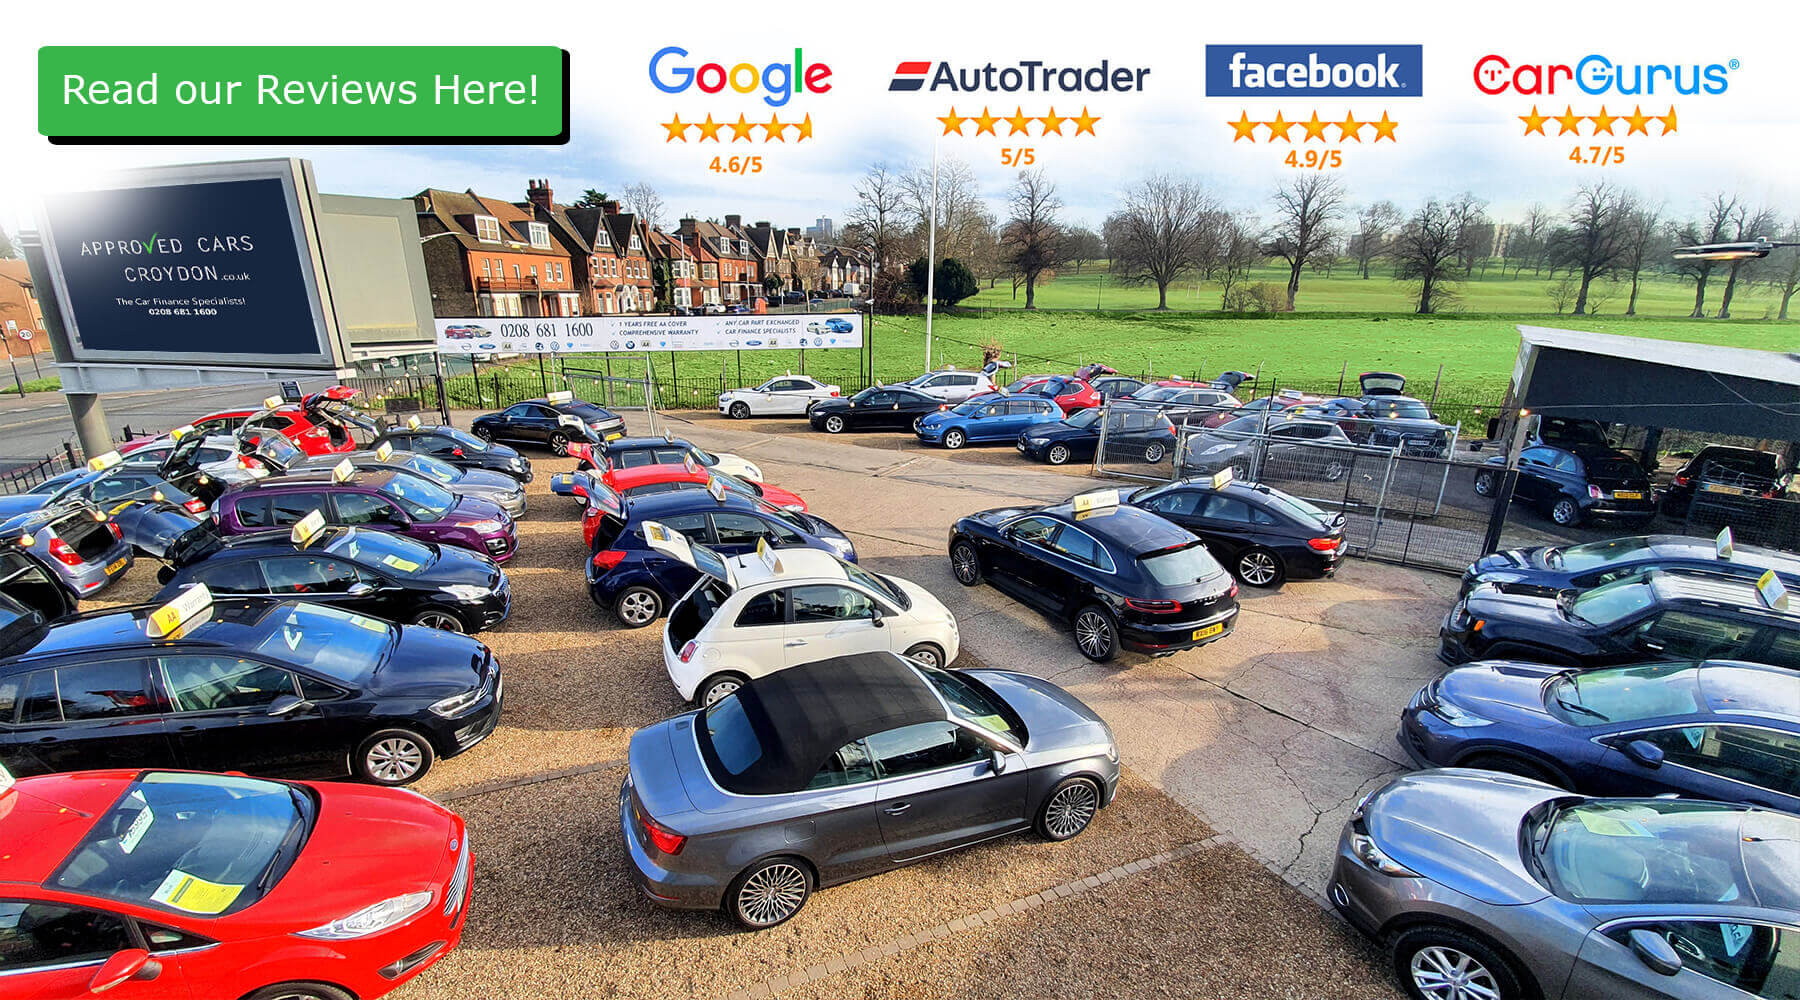 Used Cars And Finance Specialists Approved Cars Croydon